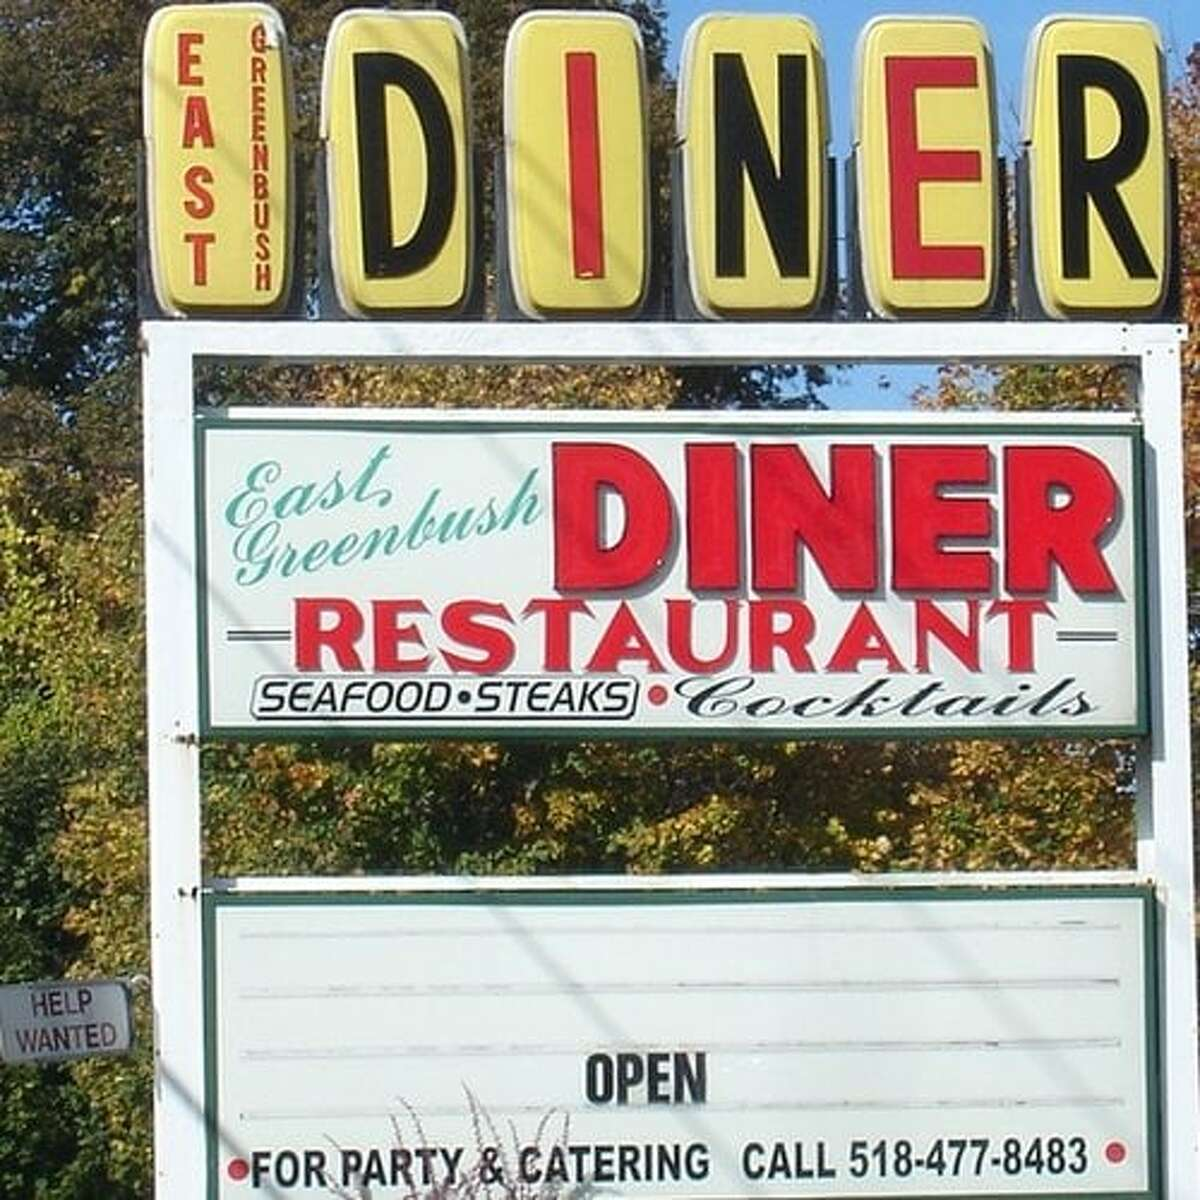 The East Greenbush Diner on the Columbia Turnpike in East Greenbush.